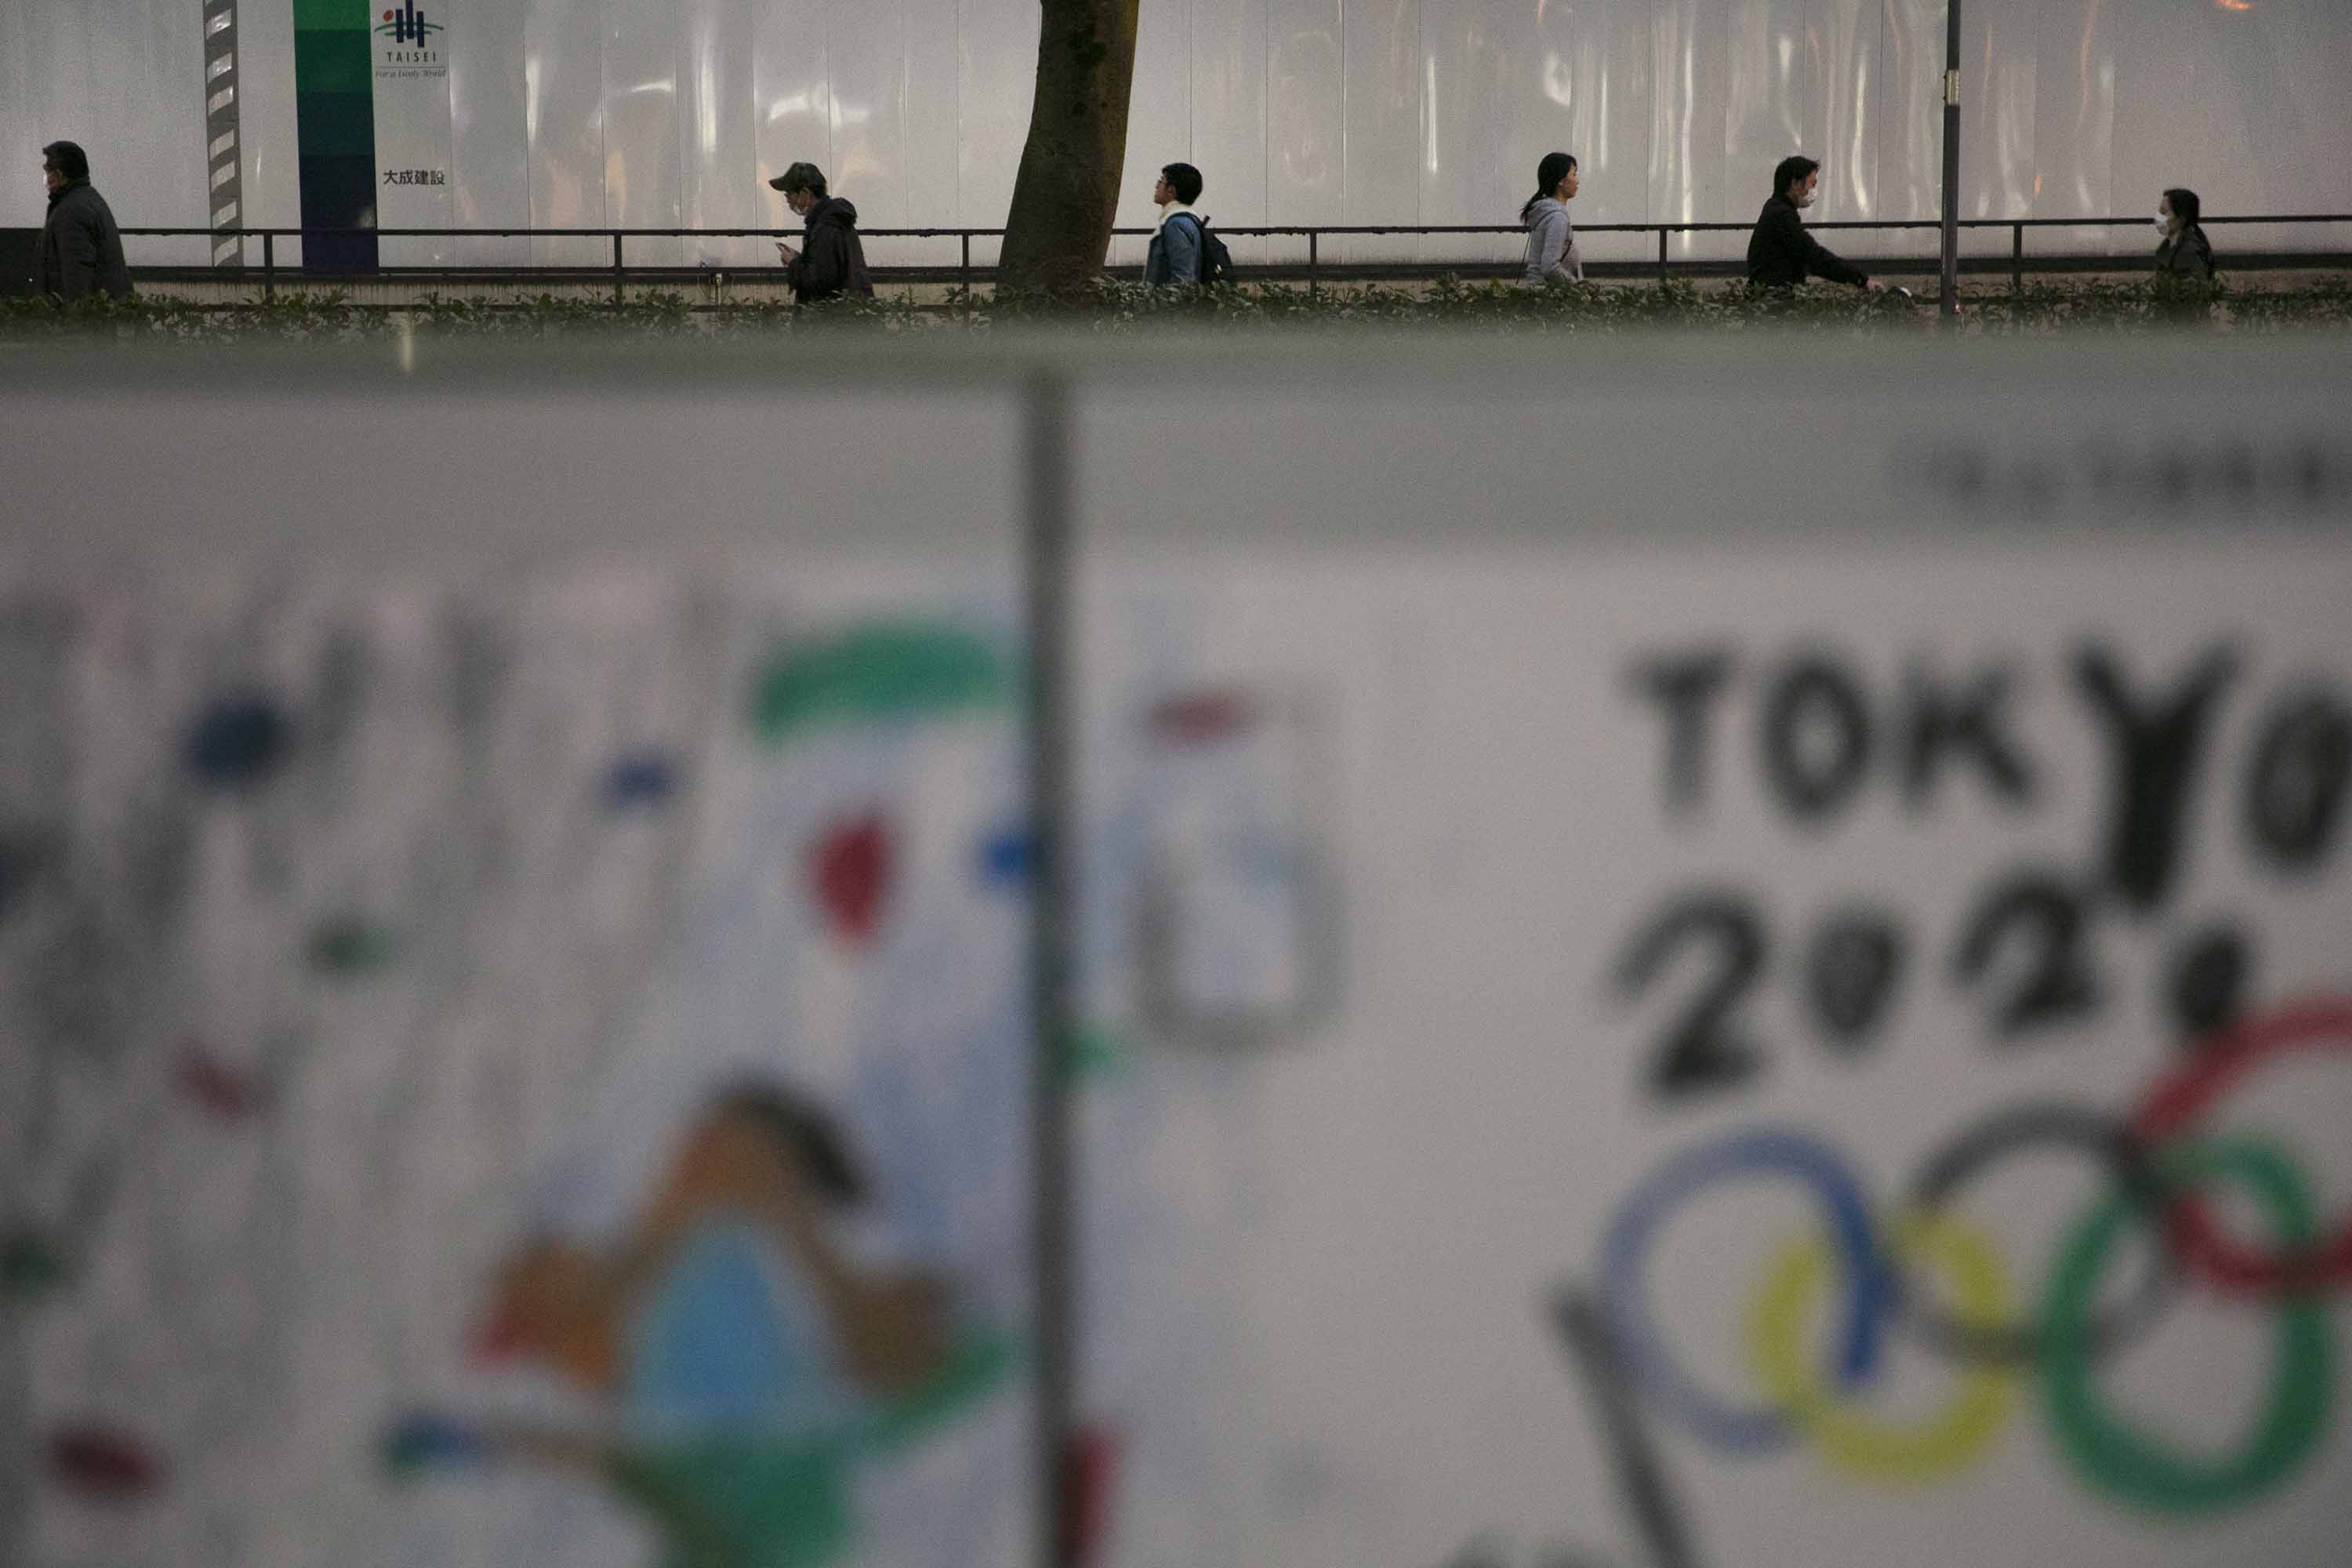 Commuters in Tokyo make their way past a poster celebrating the Tokyo 2020 Olympics, foreground, on Tuesday.